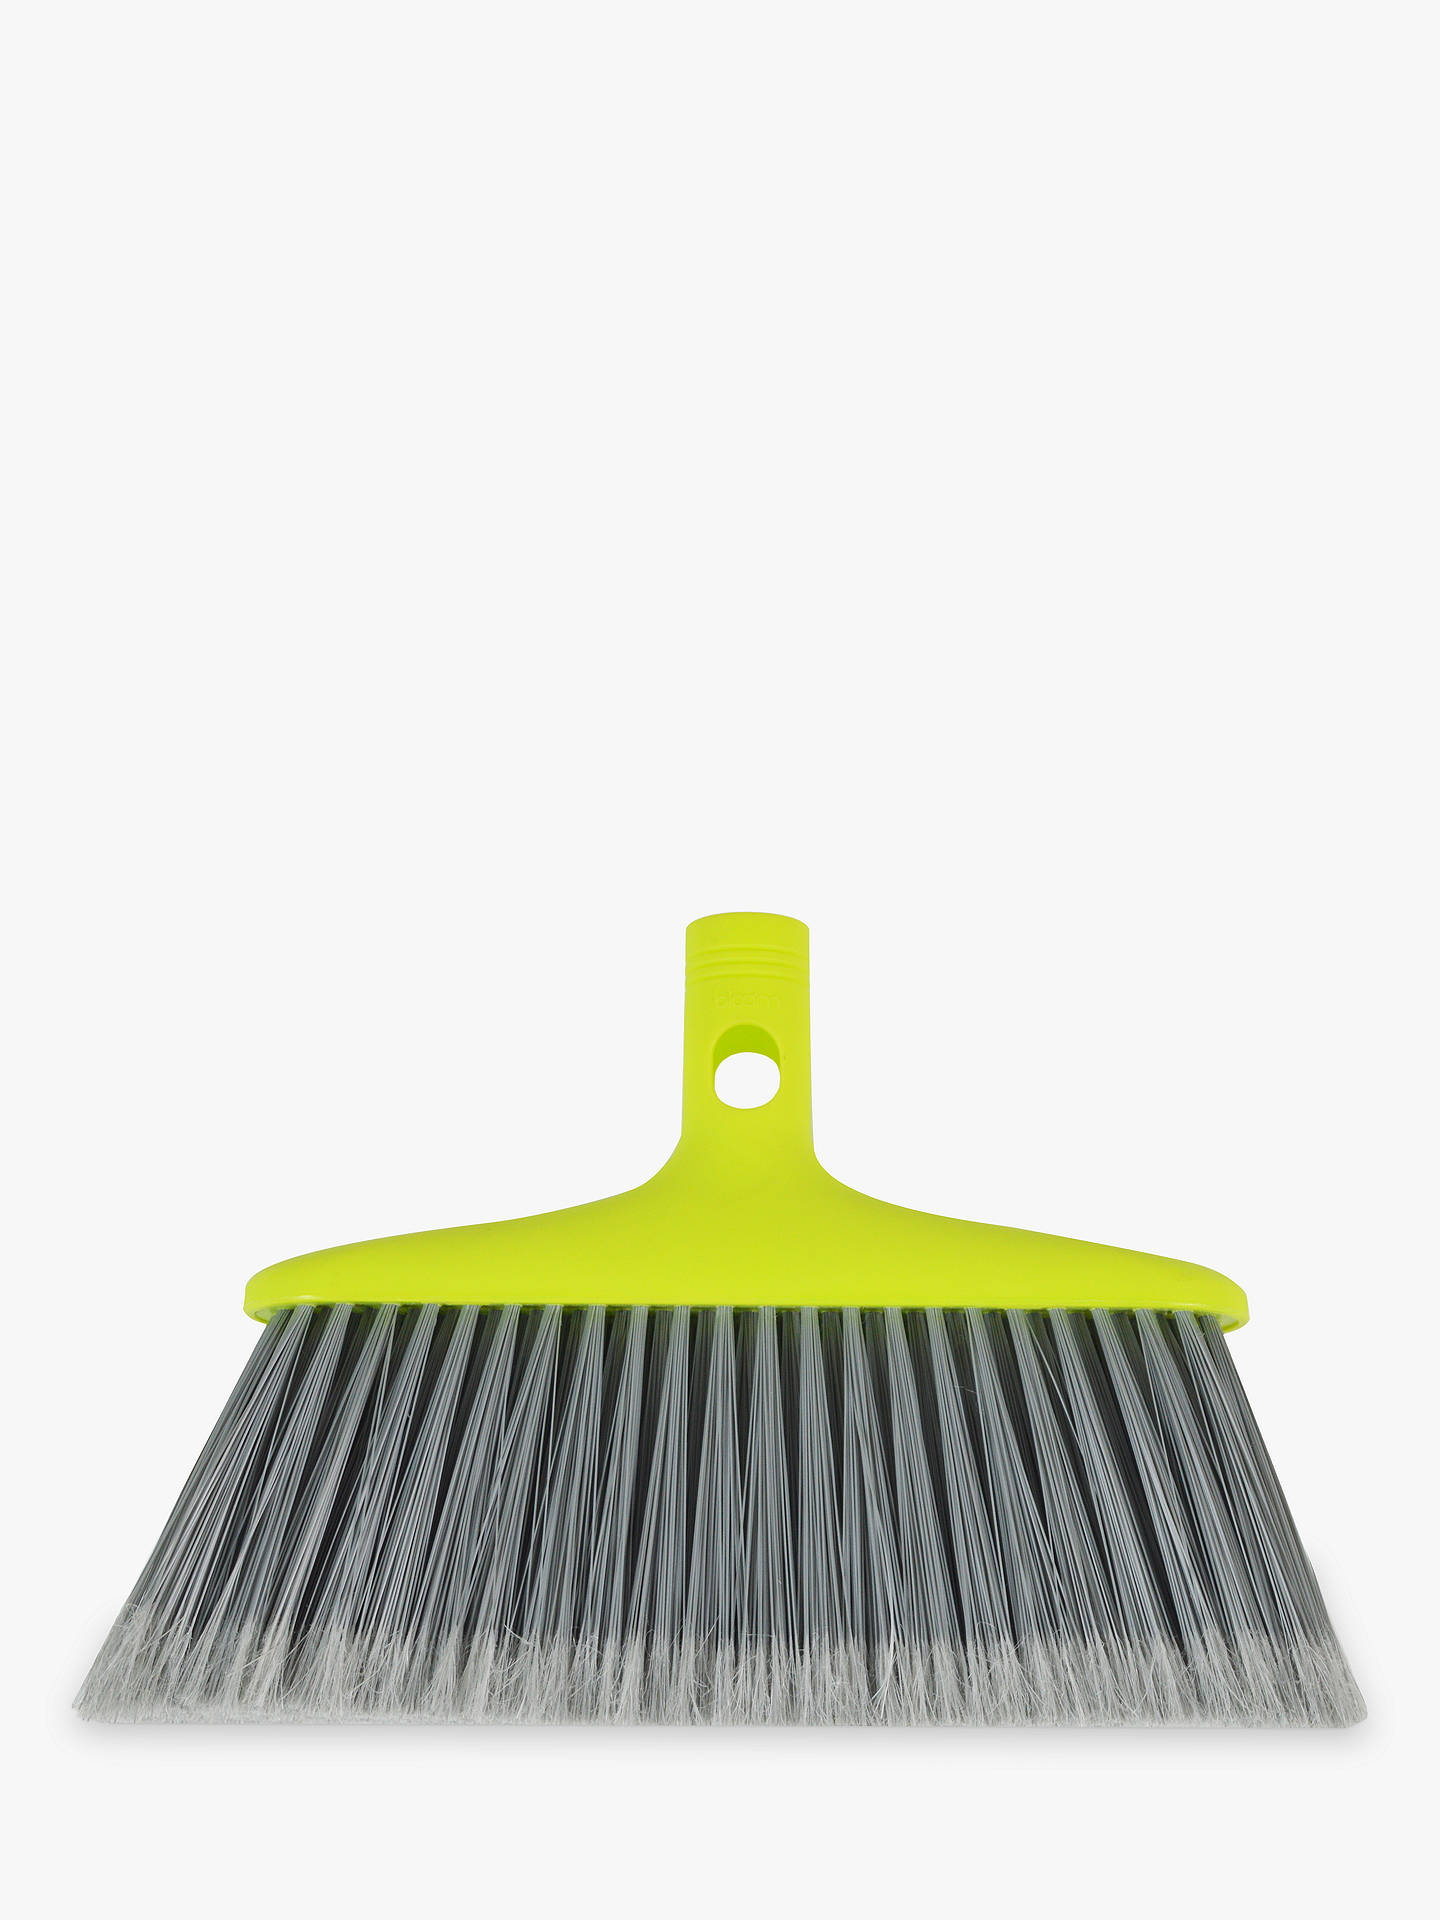 BuyBloom Homewares Bucket Solution - Telescopic Broom Replacement Head Online at johnlewis.com